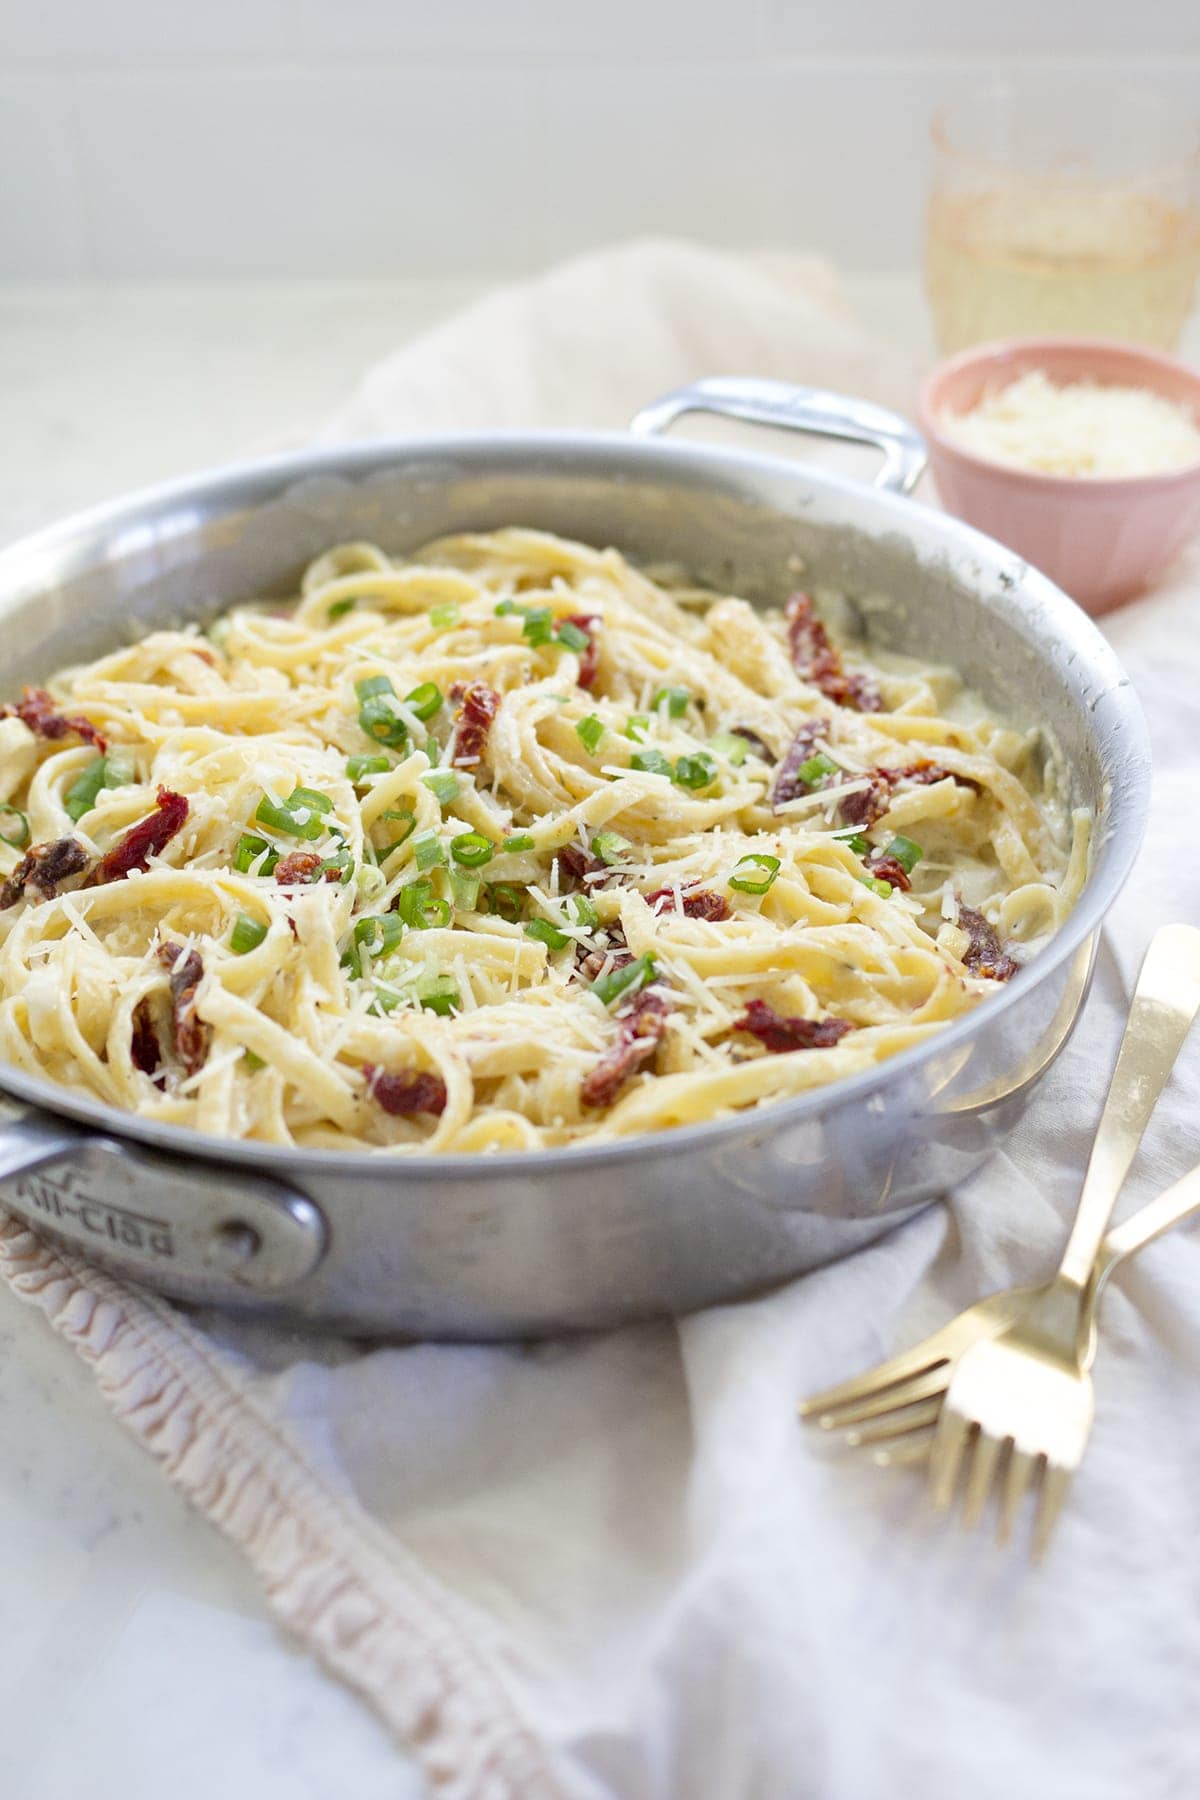 Fettuccine Alfredo with Sun-dried Tomatoes and Scallions